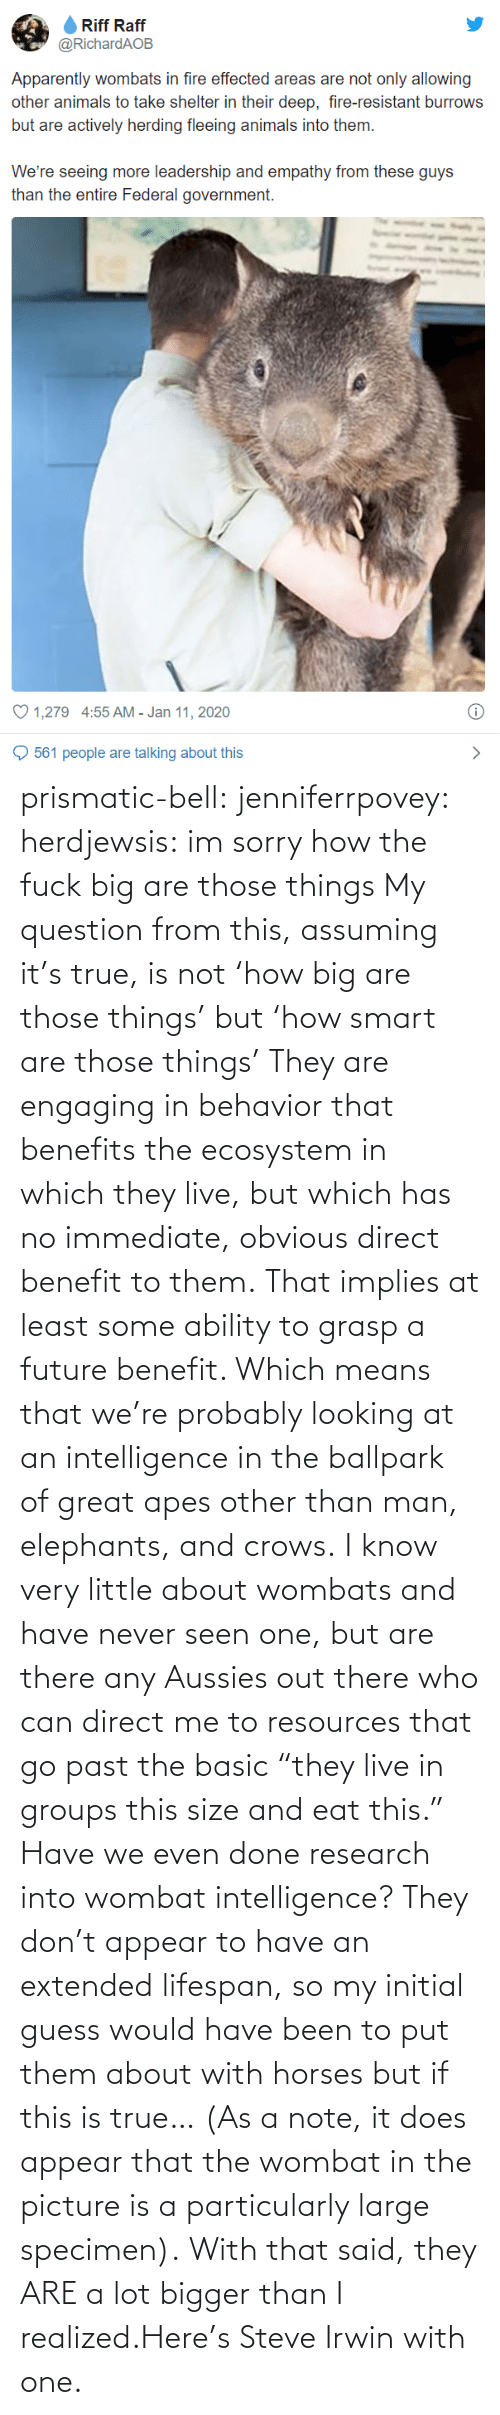 "smart: prismatic-bell:  jenniferrpovey: herdjewsis: im sorry how the fuck big are those things My question from this, assuming it's true, is not 'how big are those things' but 'how smart are those things' They are engaging in behavior that benefits the ecosystem in which they live, but which has no immediate, obvious direct benefit to them. That implies at least some ability to grasp a future benefit. Which means that we're probably looking at an intelligence in the ballpark of great apes other than man, elephants, and crows. I know very little about wombats and have never seen one, but are there any Aussies out there who can direct me to resources that go past the basic ""they live in groups this size and eat this."" Have we even done research into wombat intelligence? They don't appear to have an extended lifespan, so my initial guess would have been to put them about with horses but if this is true… (As a note, it does appear that the wombat in the picture is a particularly large specimen).  With that said, they ARE a lot bigger than I realized.Here's Steve Irwin with one."